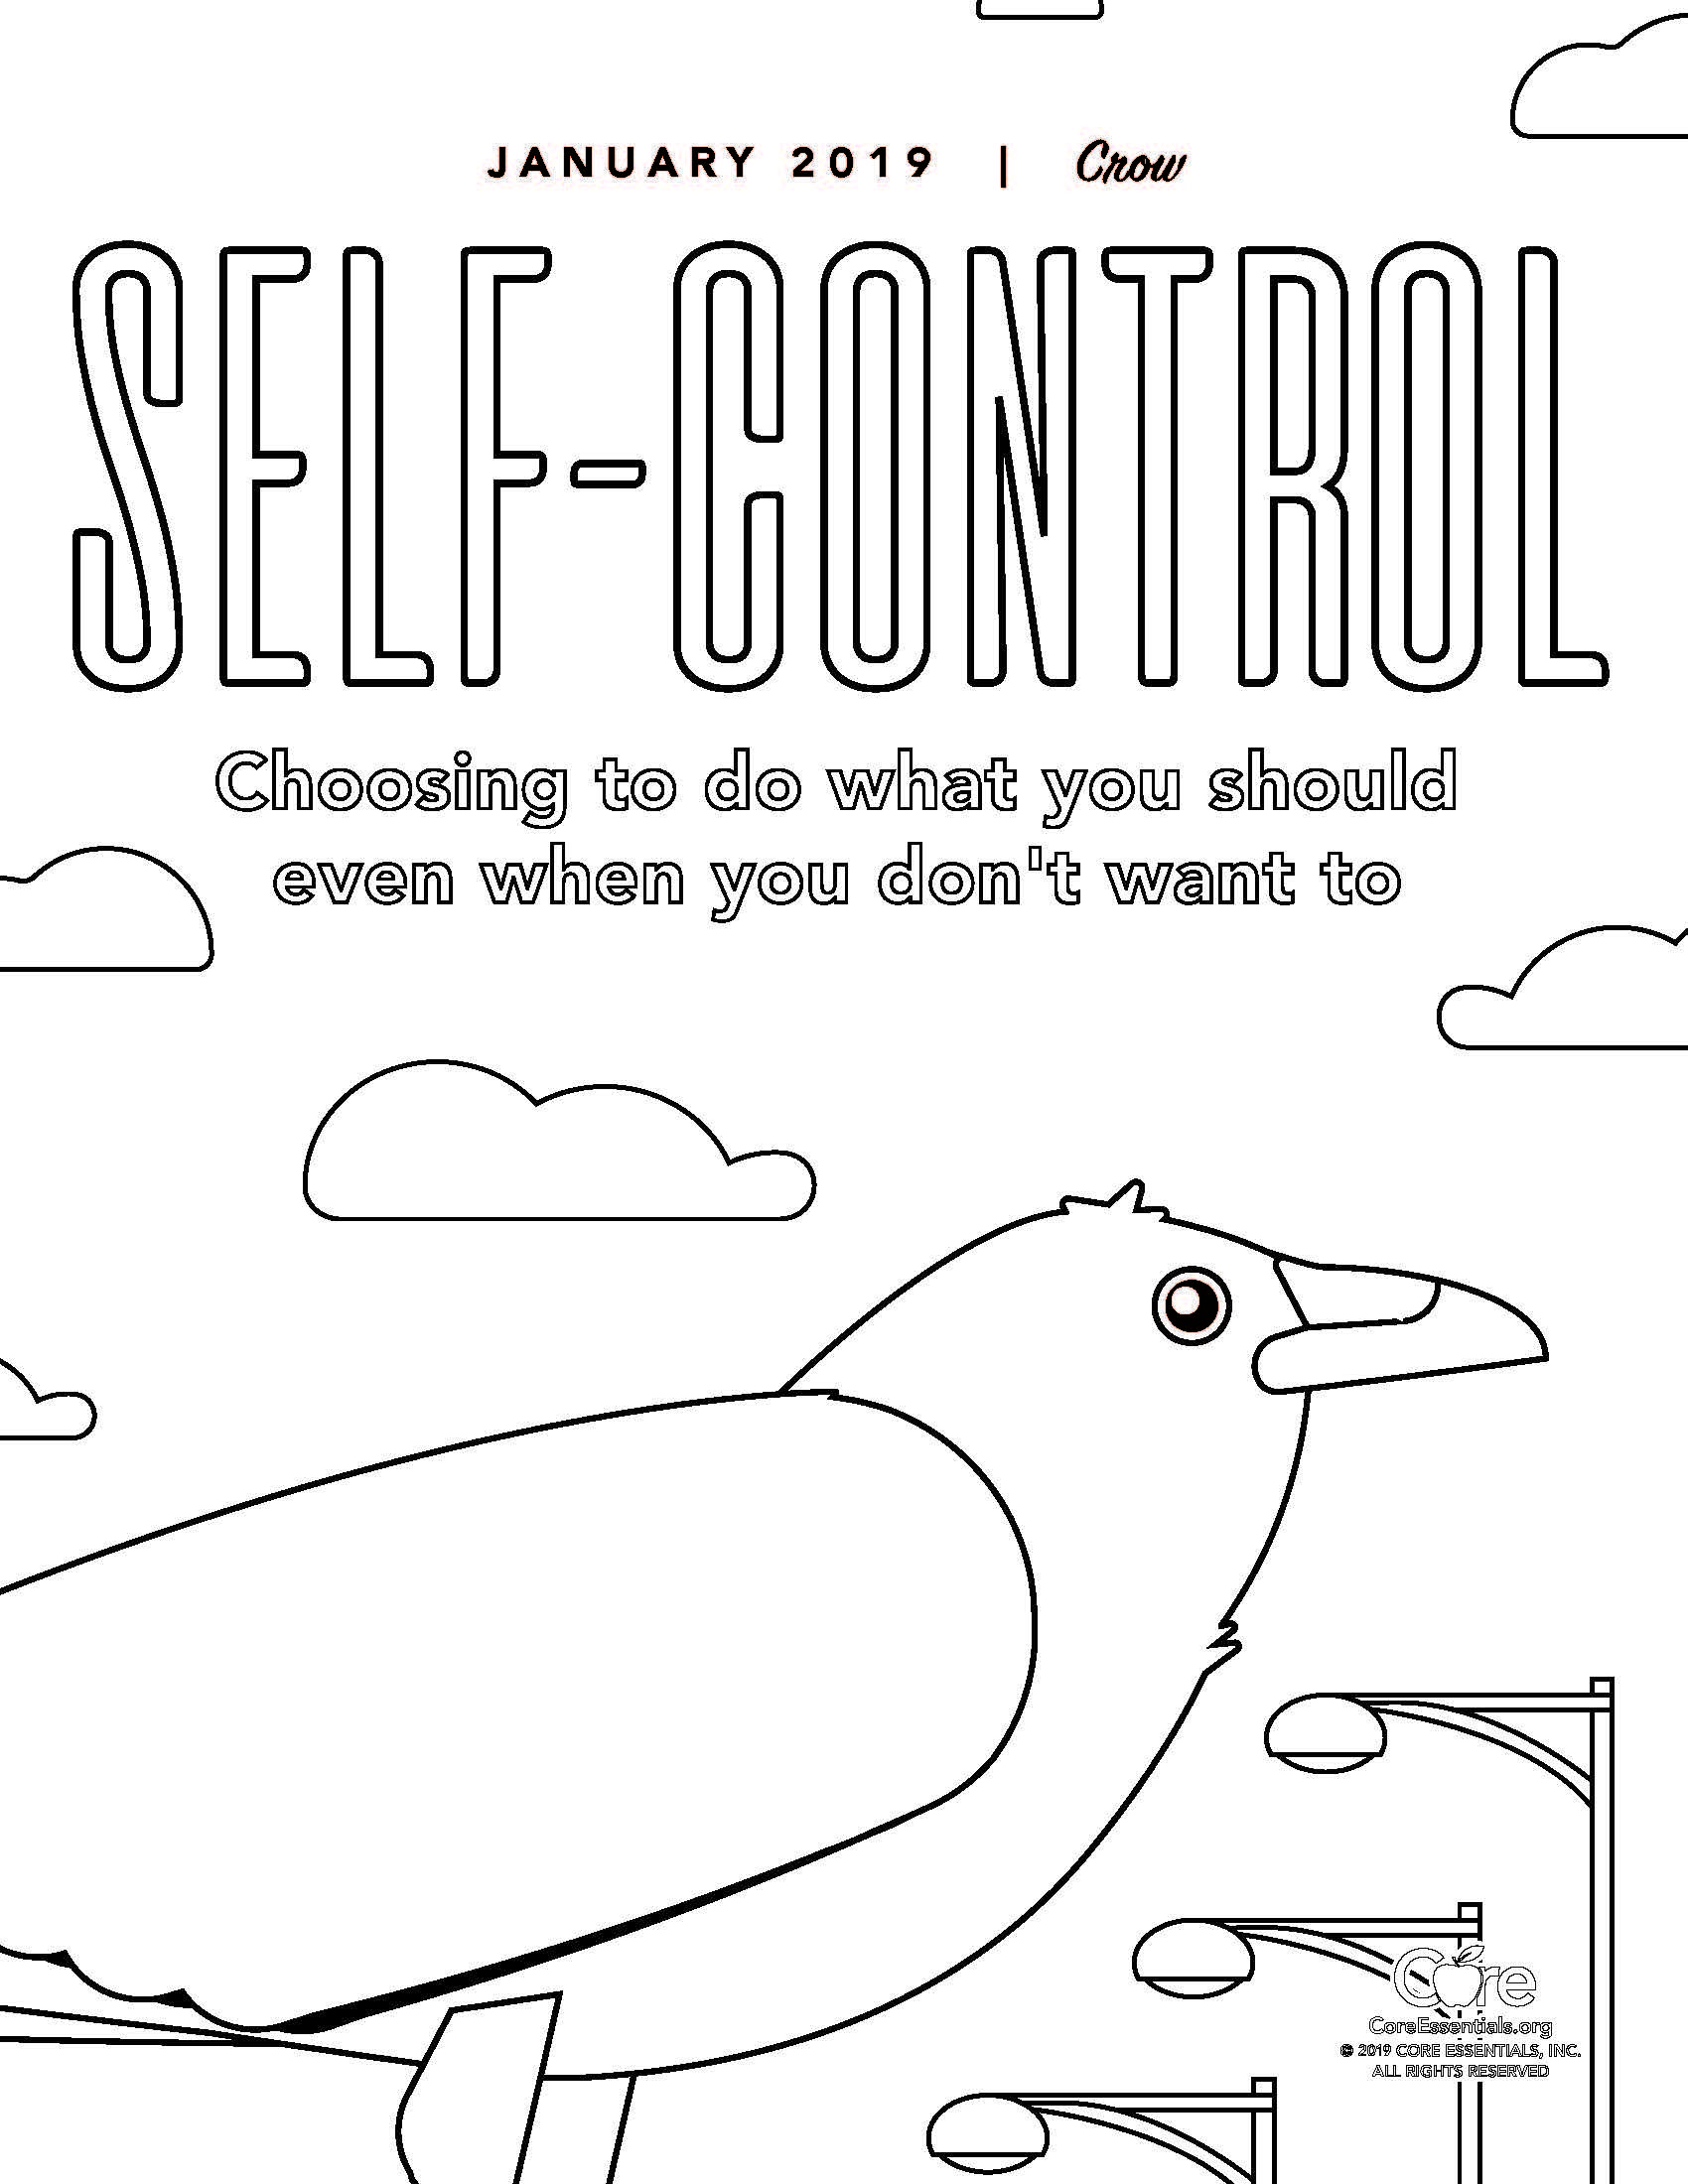 Pin By Core Essential Values On Self Control Jan